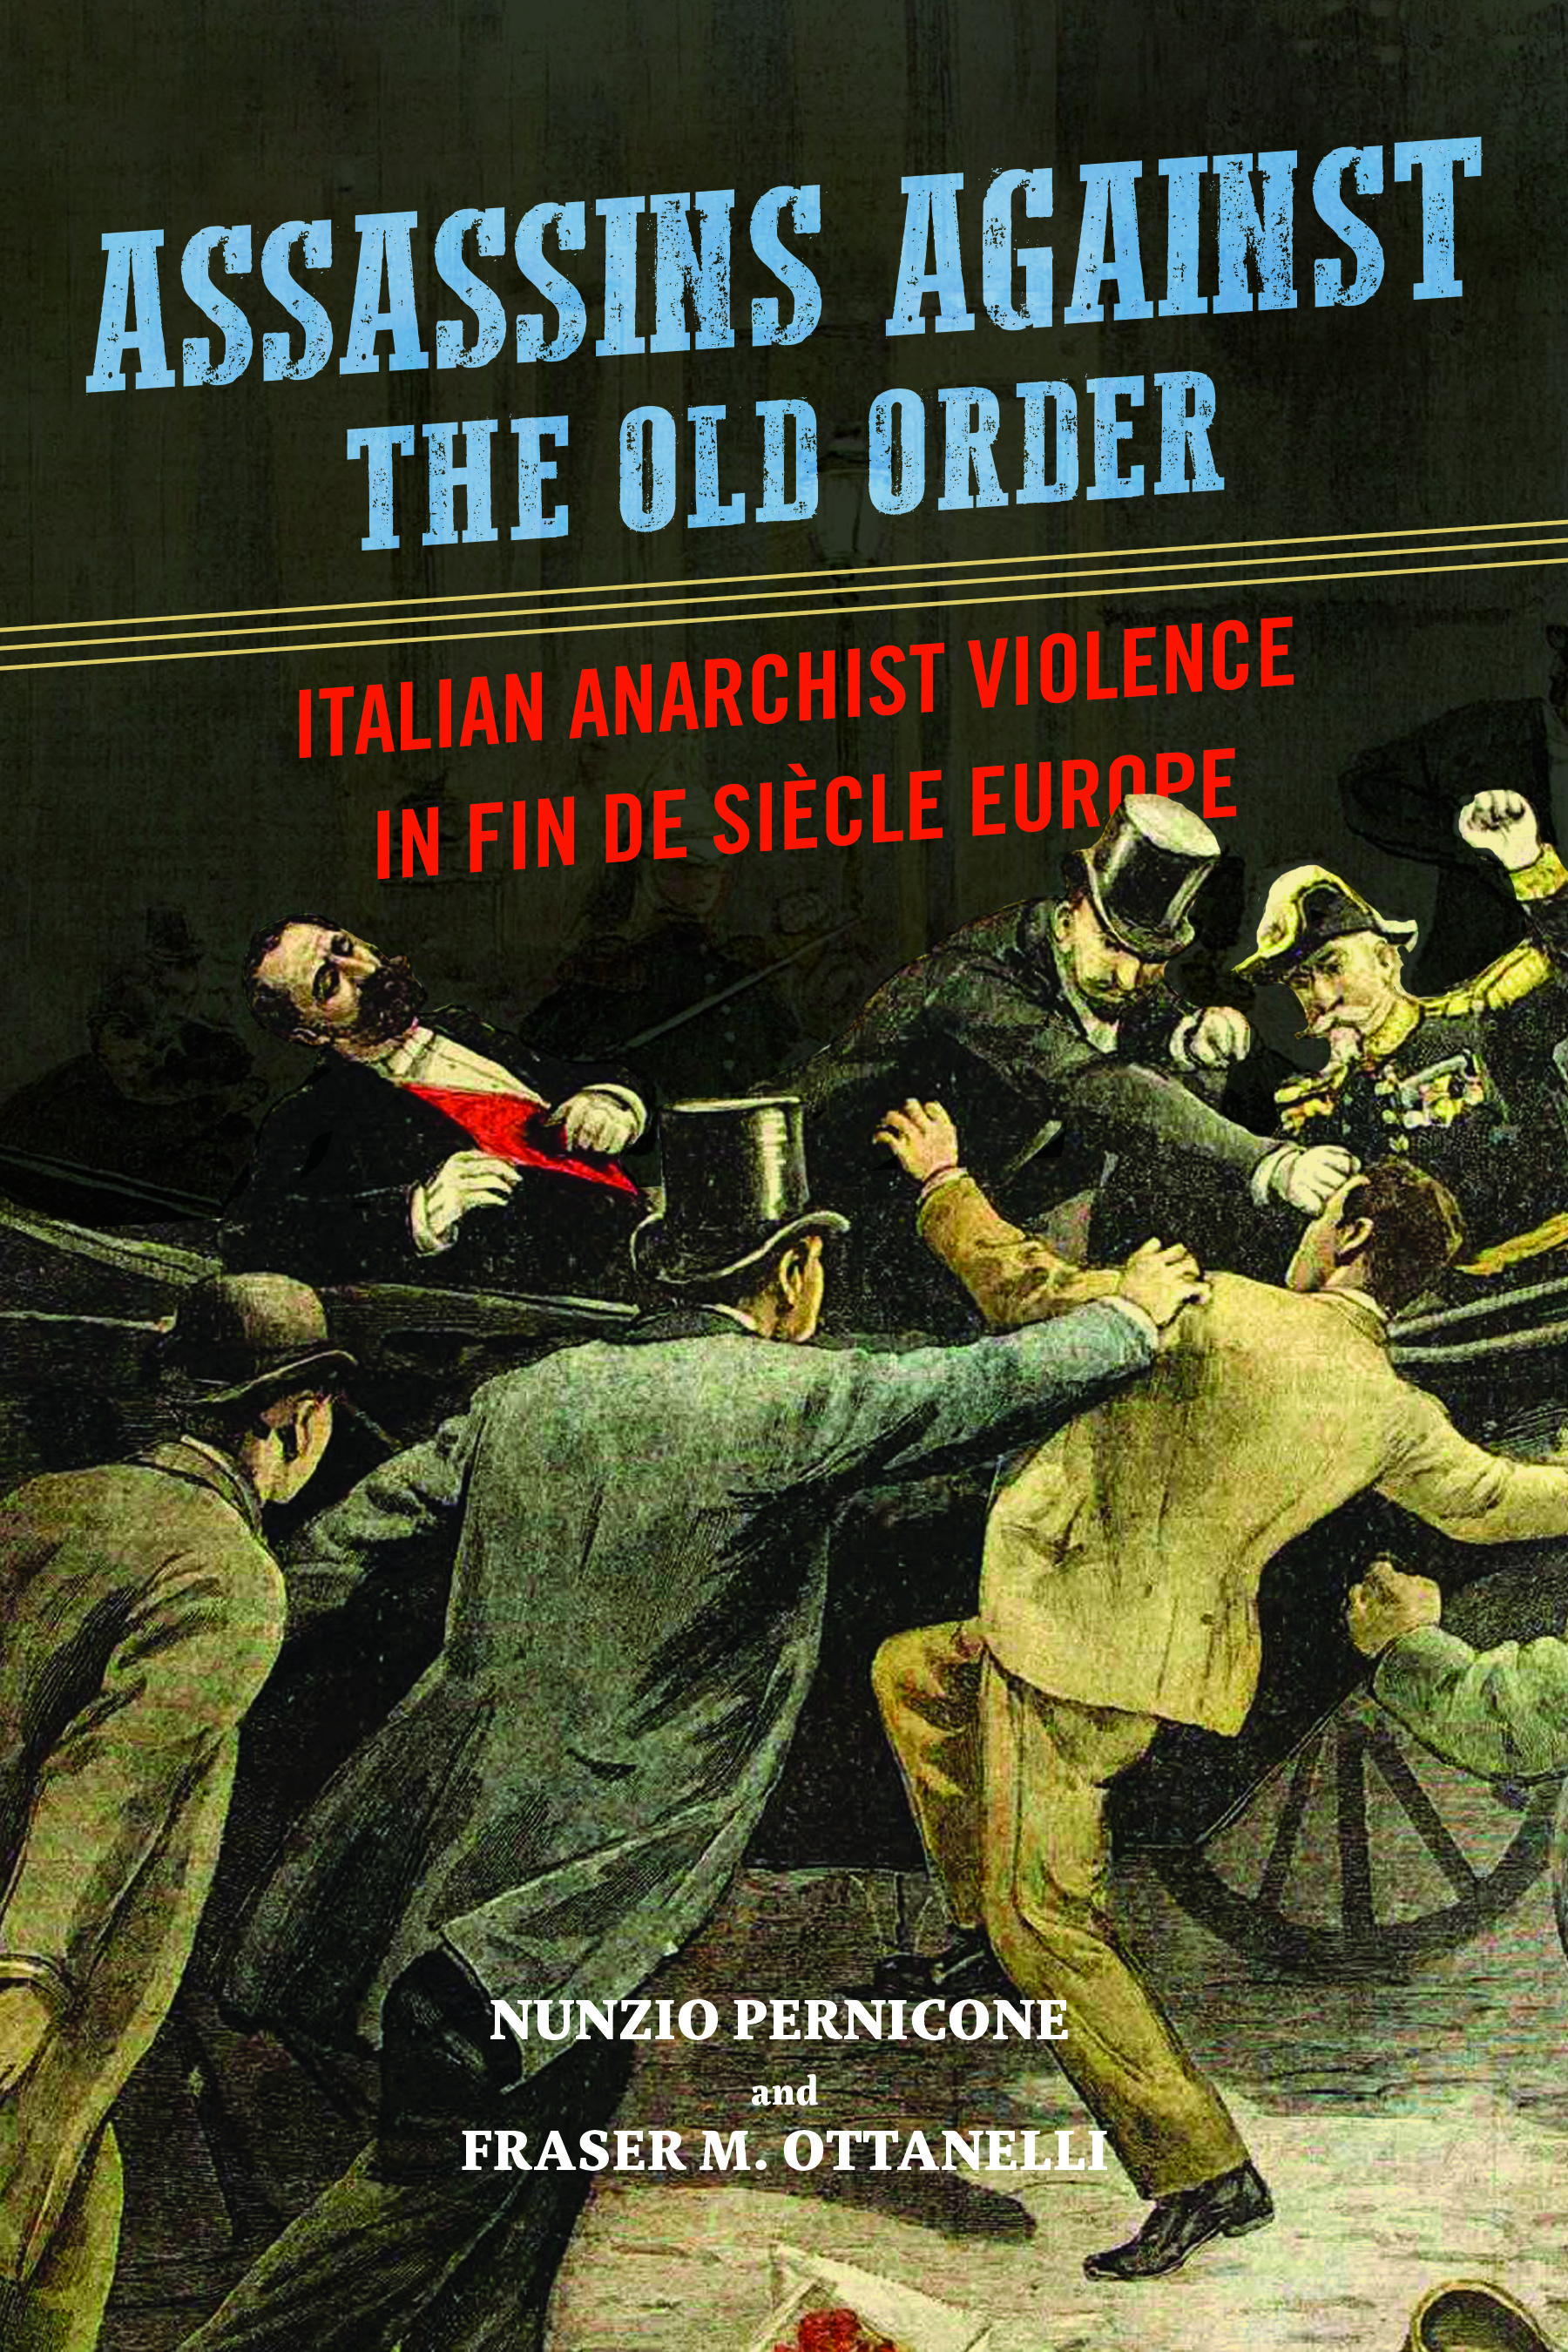 Assassins against the Old Order: Italian Anarchist Violence in Fin de Siècle Europe